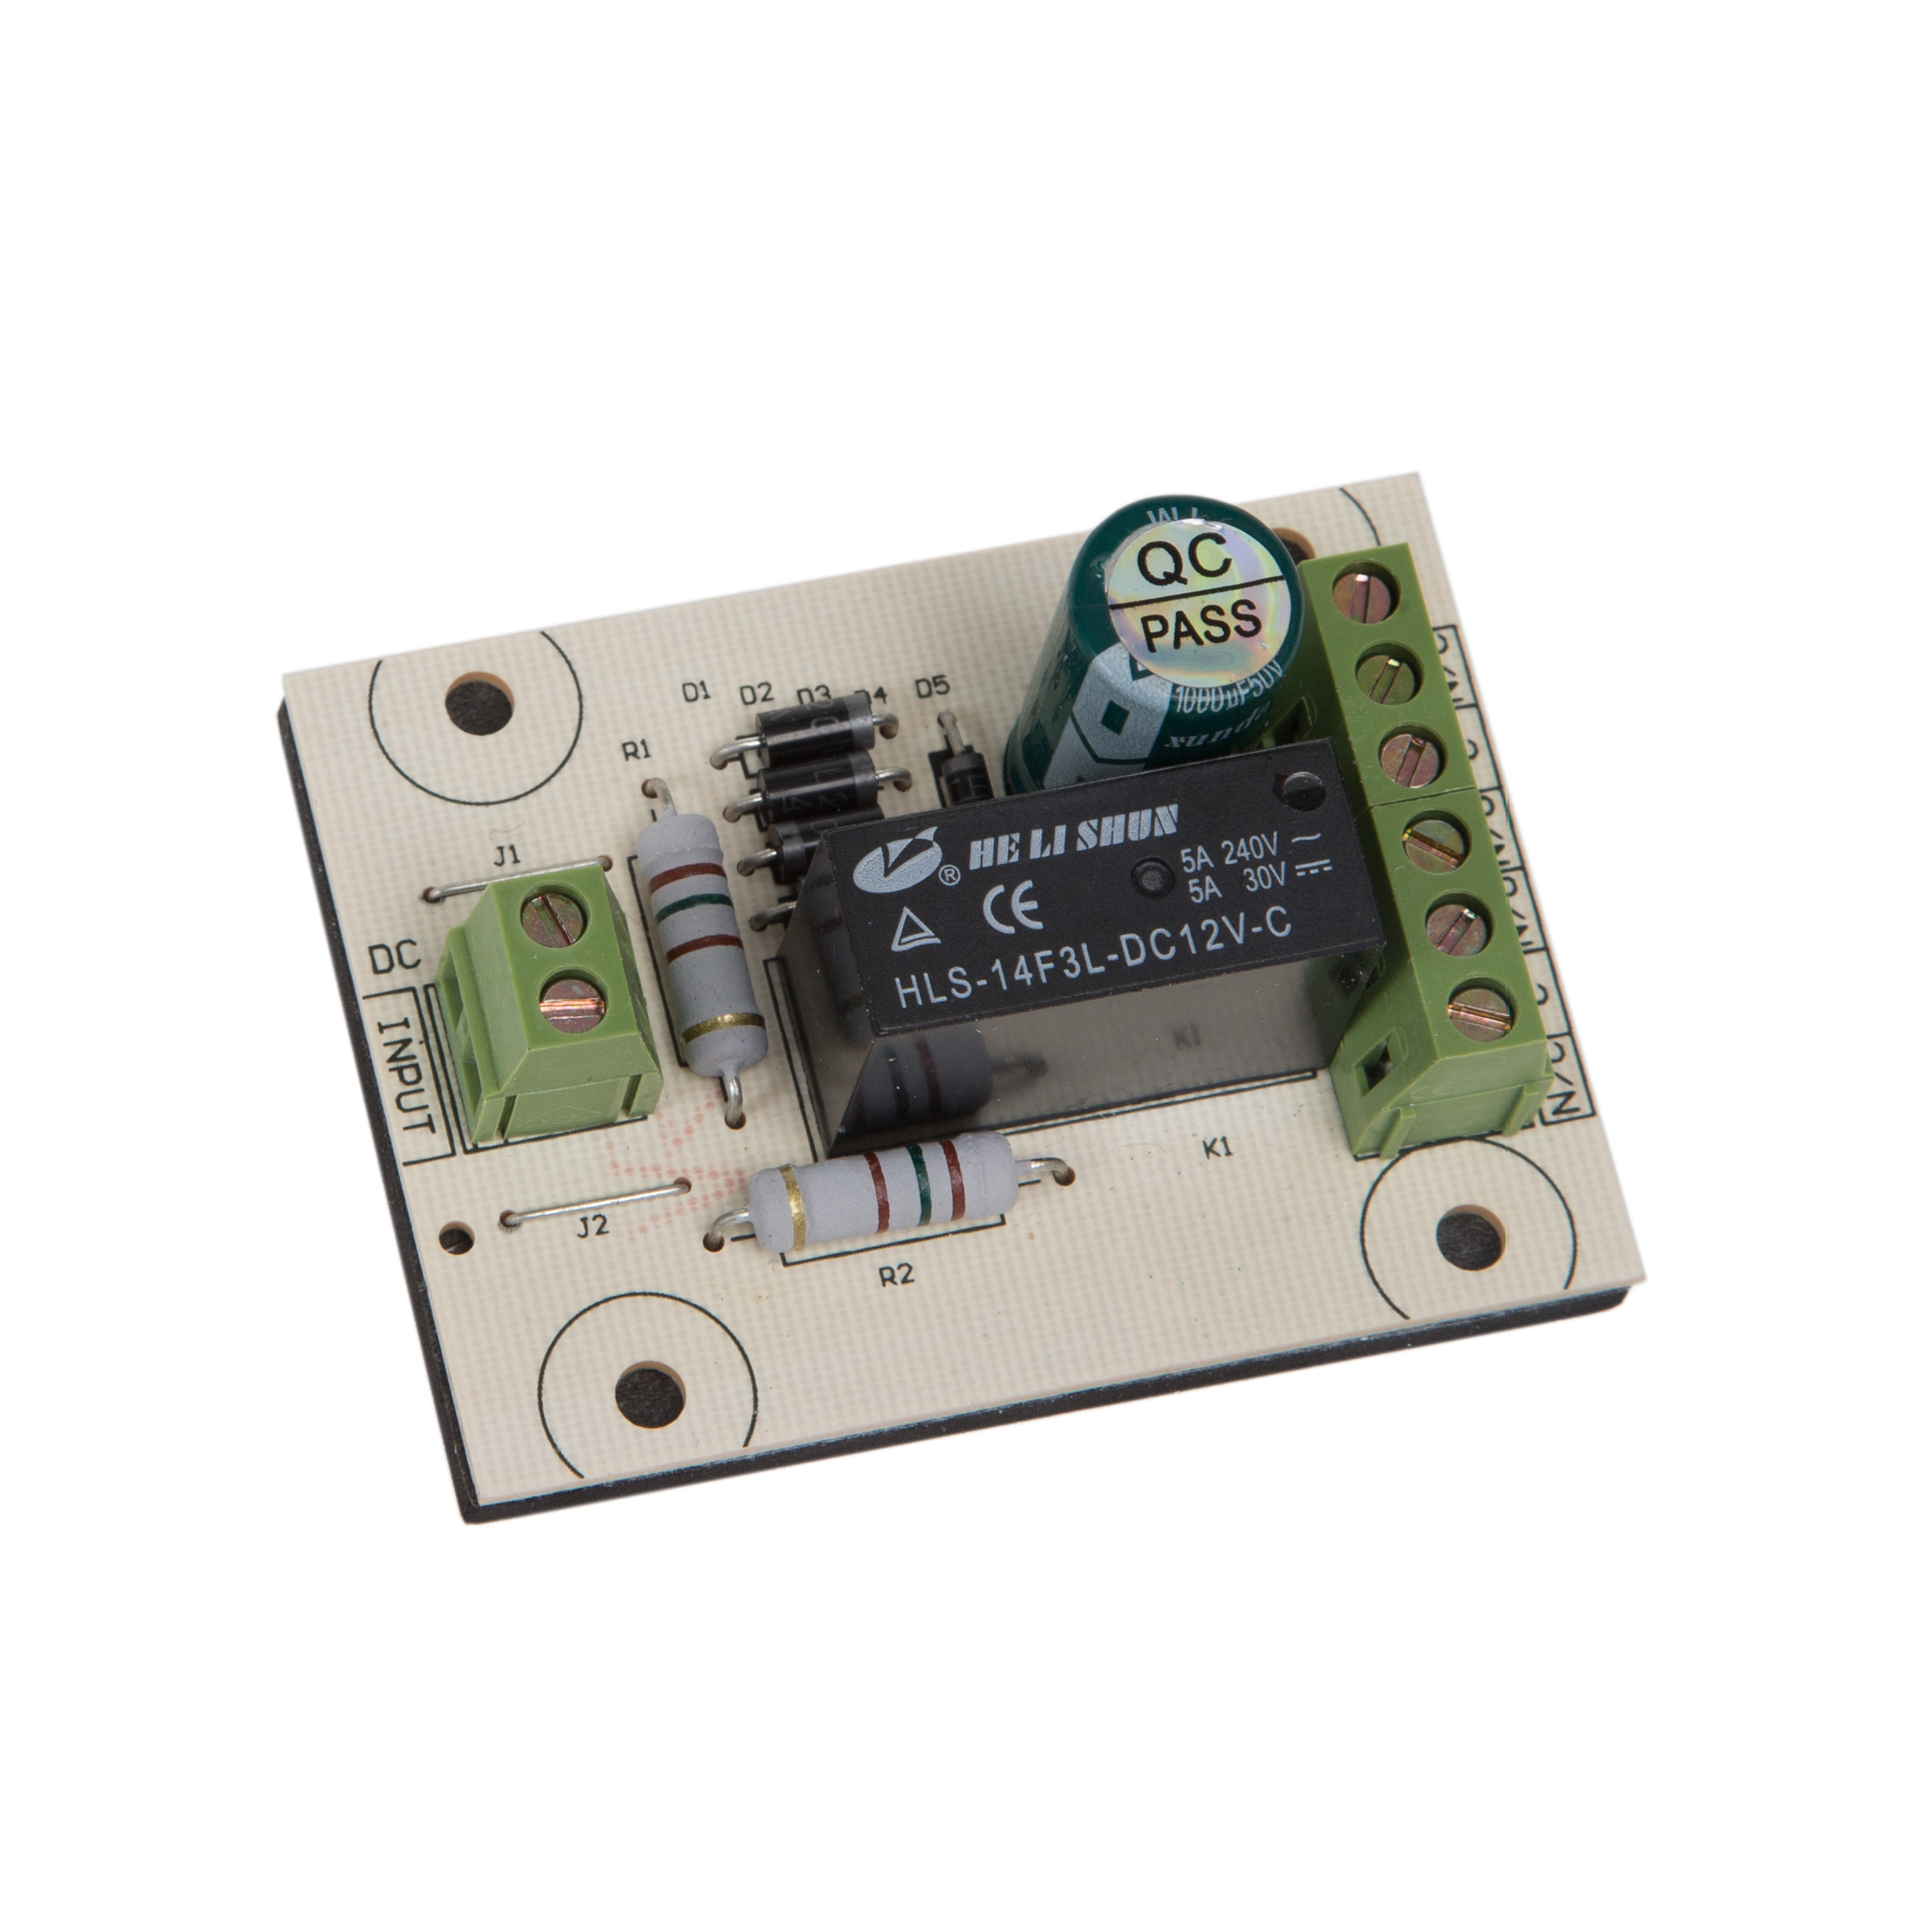 Relay to operate a low current input at 12VDC/AC to switch a higher voltage at 5Amps.